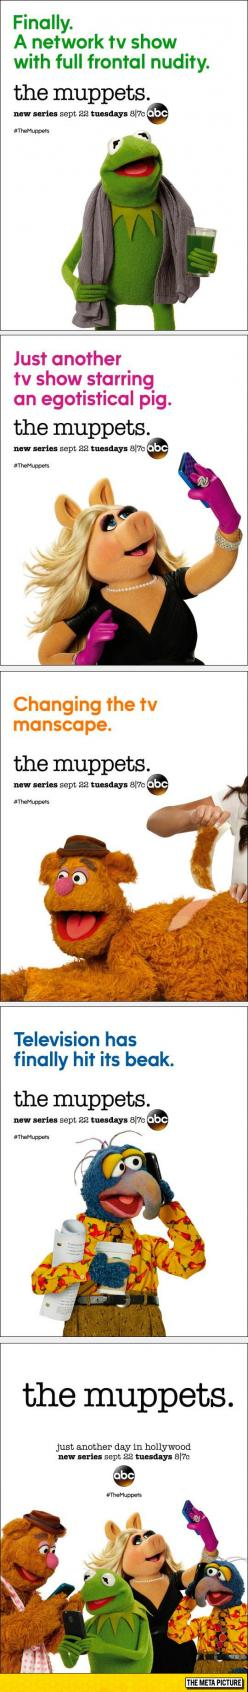 The New Posters For The Muppets Are Hilarious